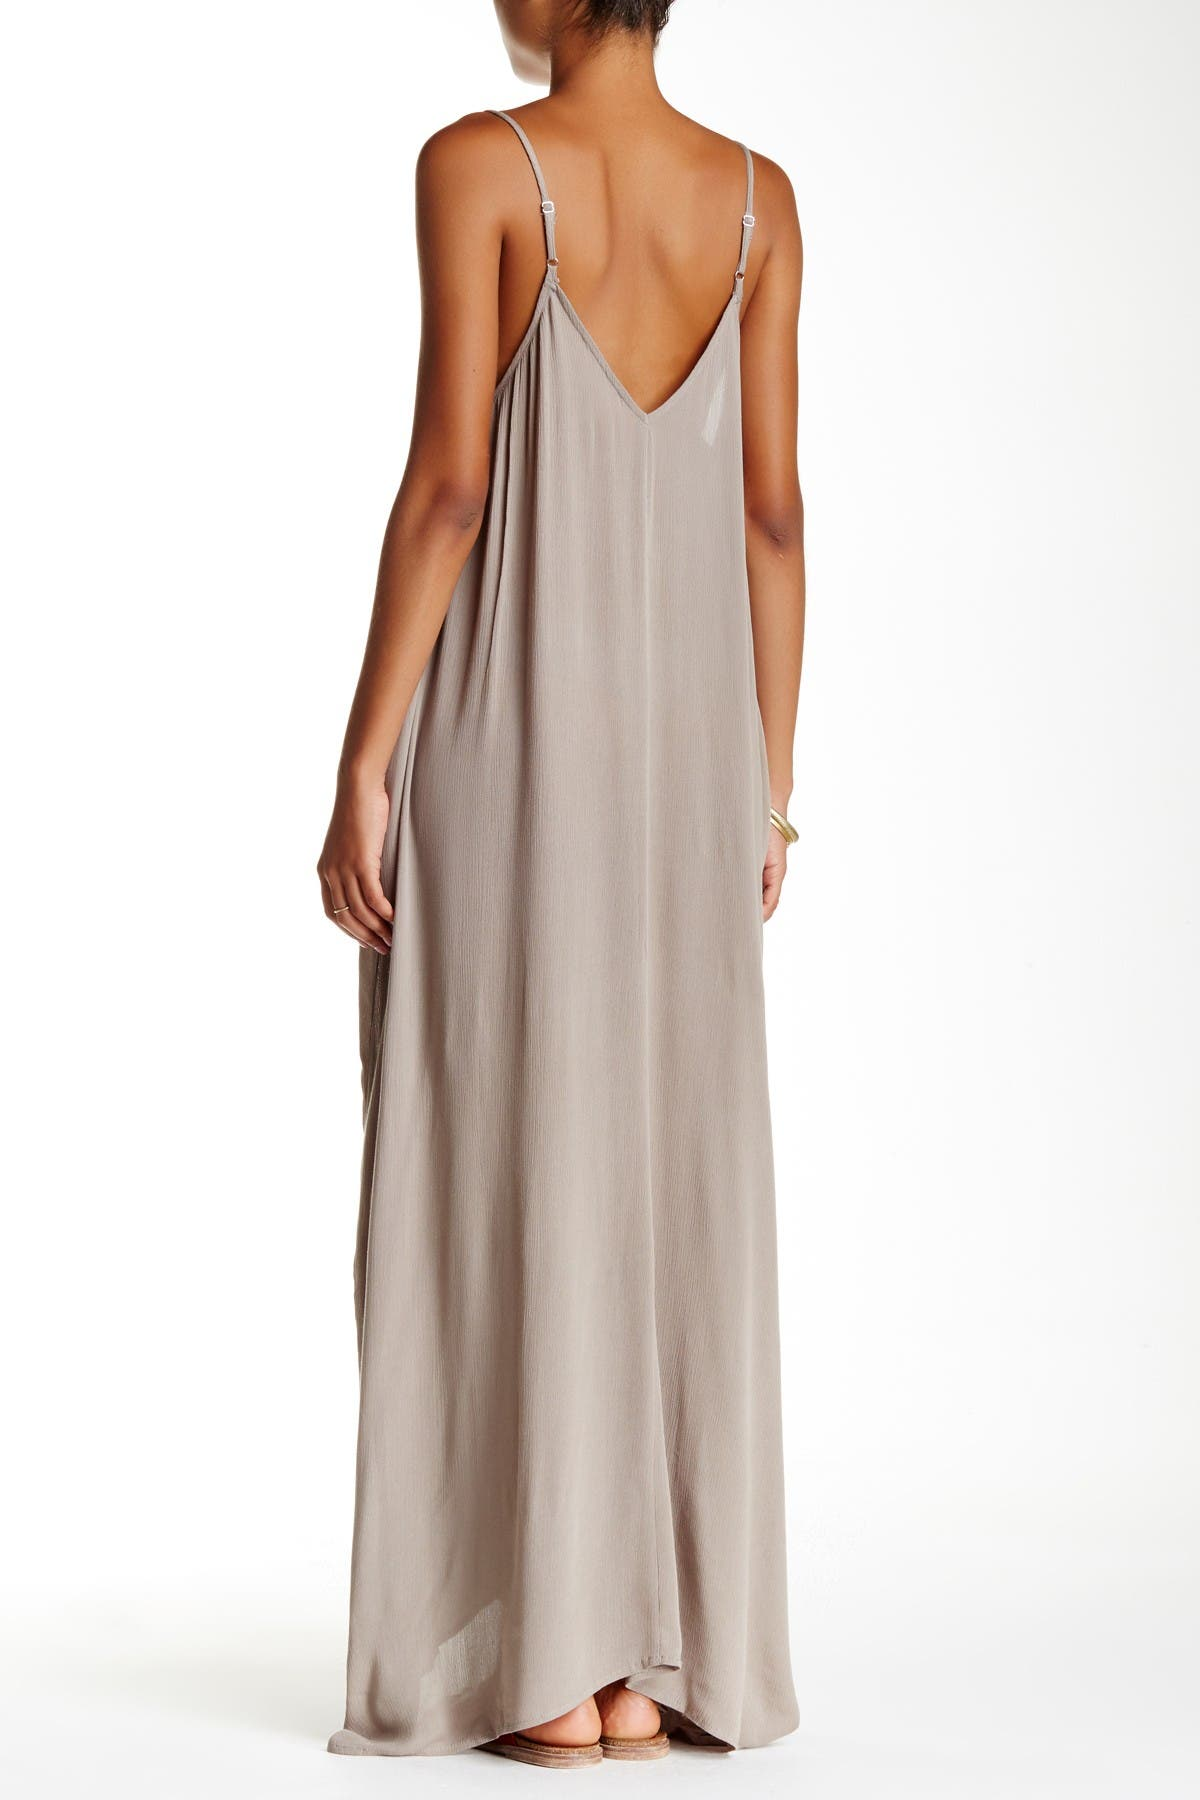 Image of Love Stitch Gauze Maxi Dress